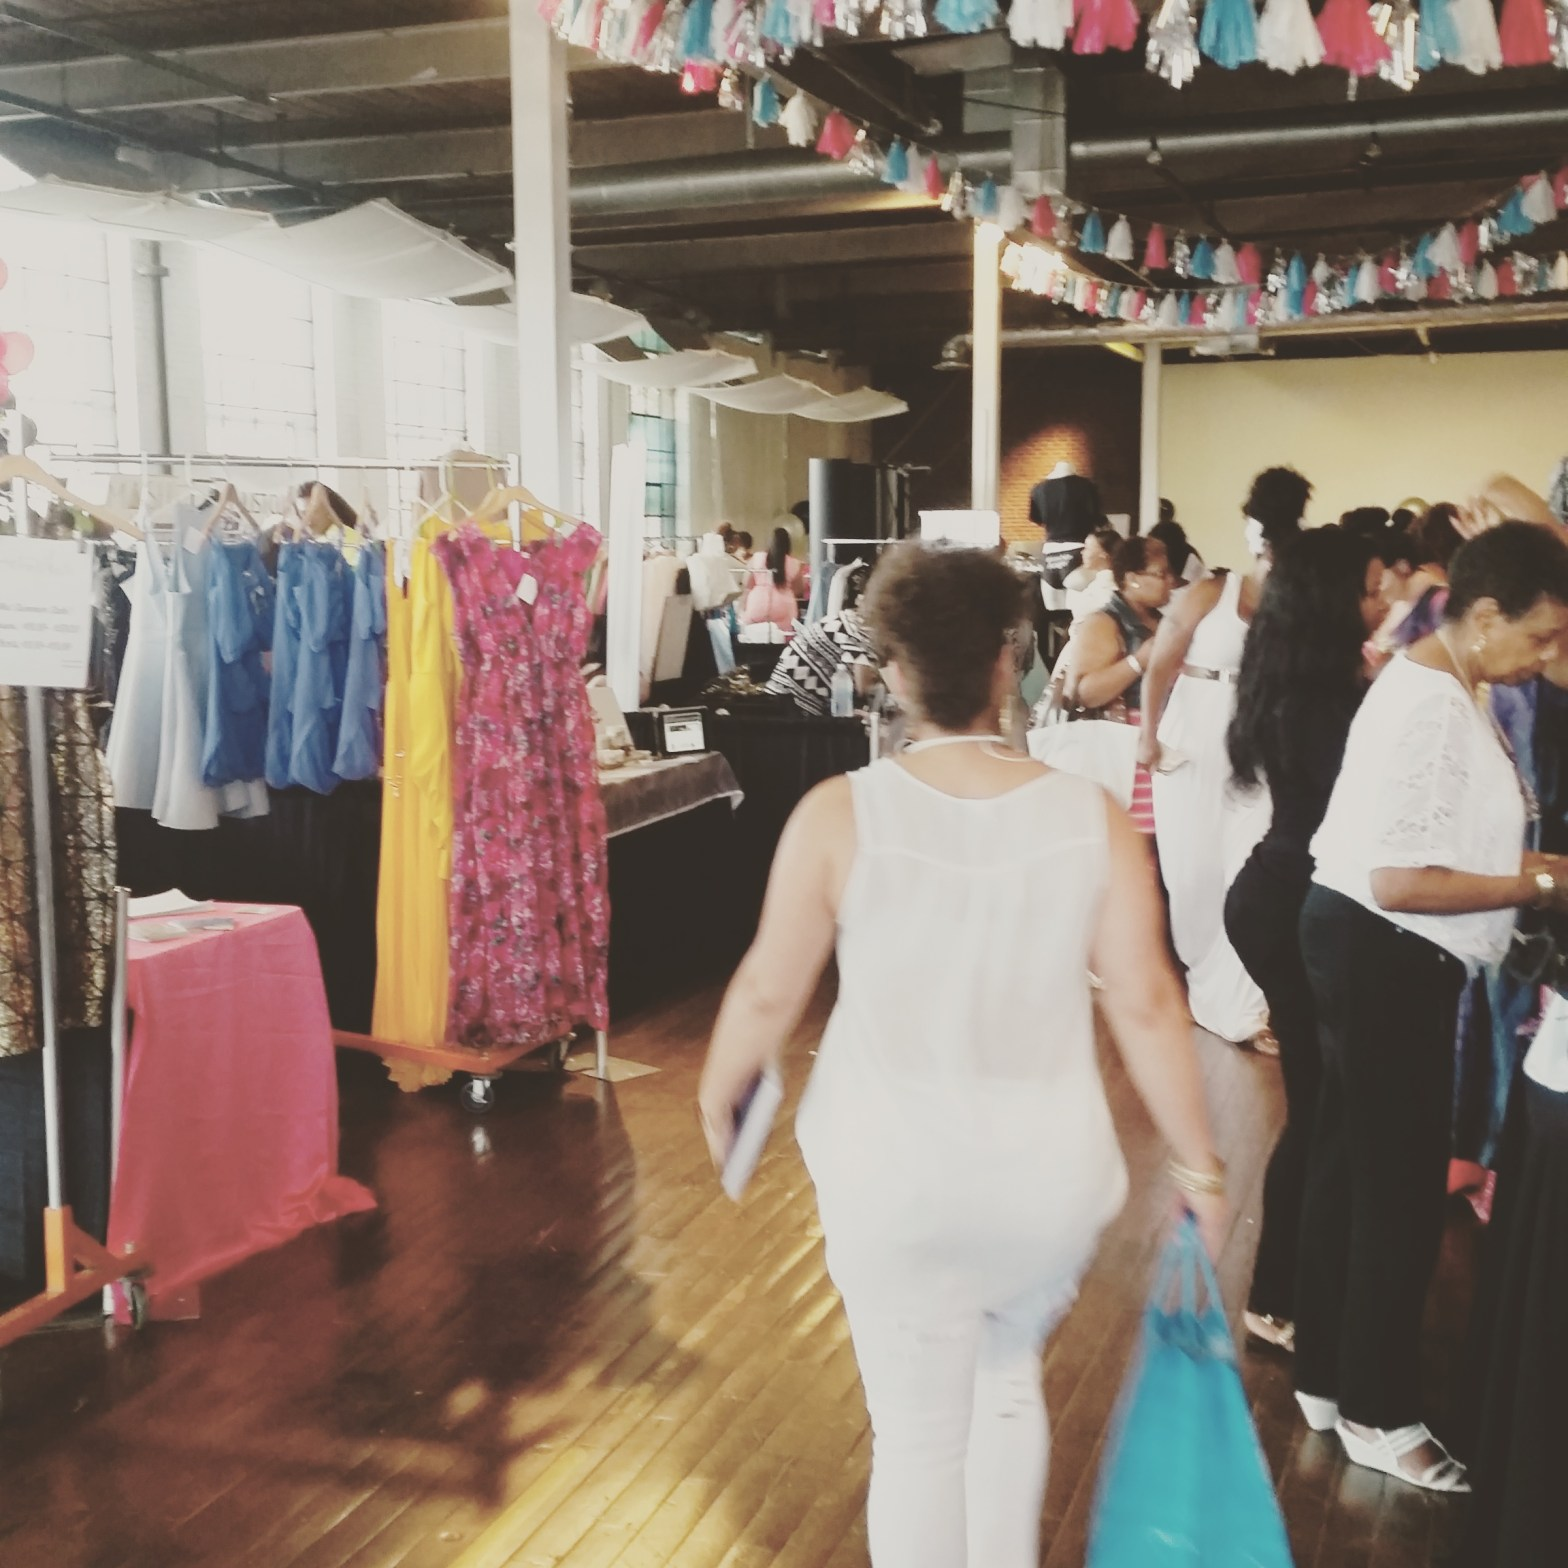 The Curvy Fashionista Style Expo